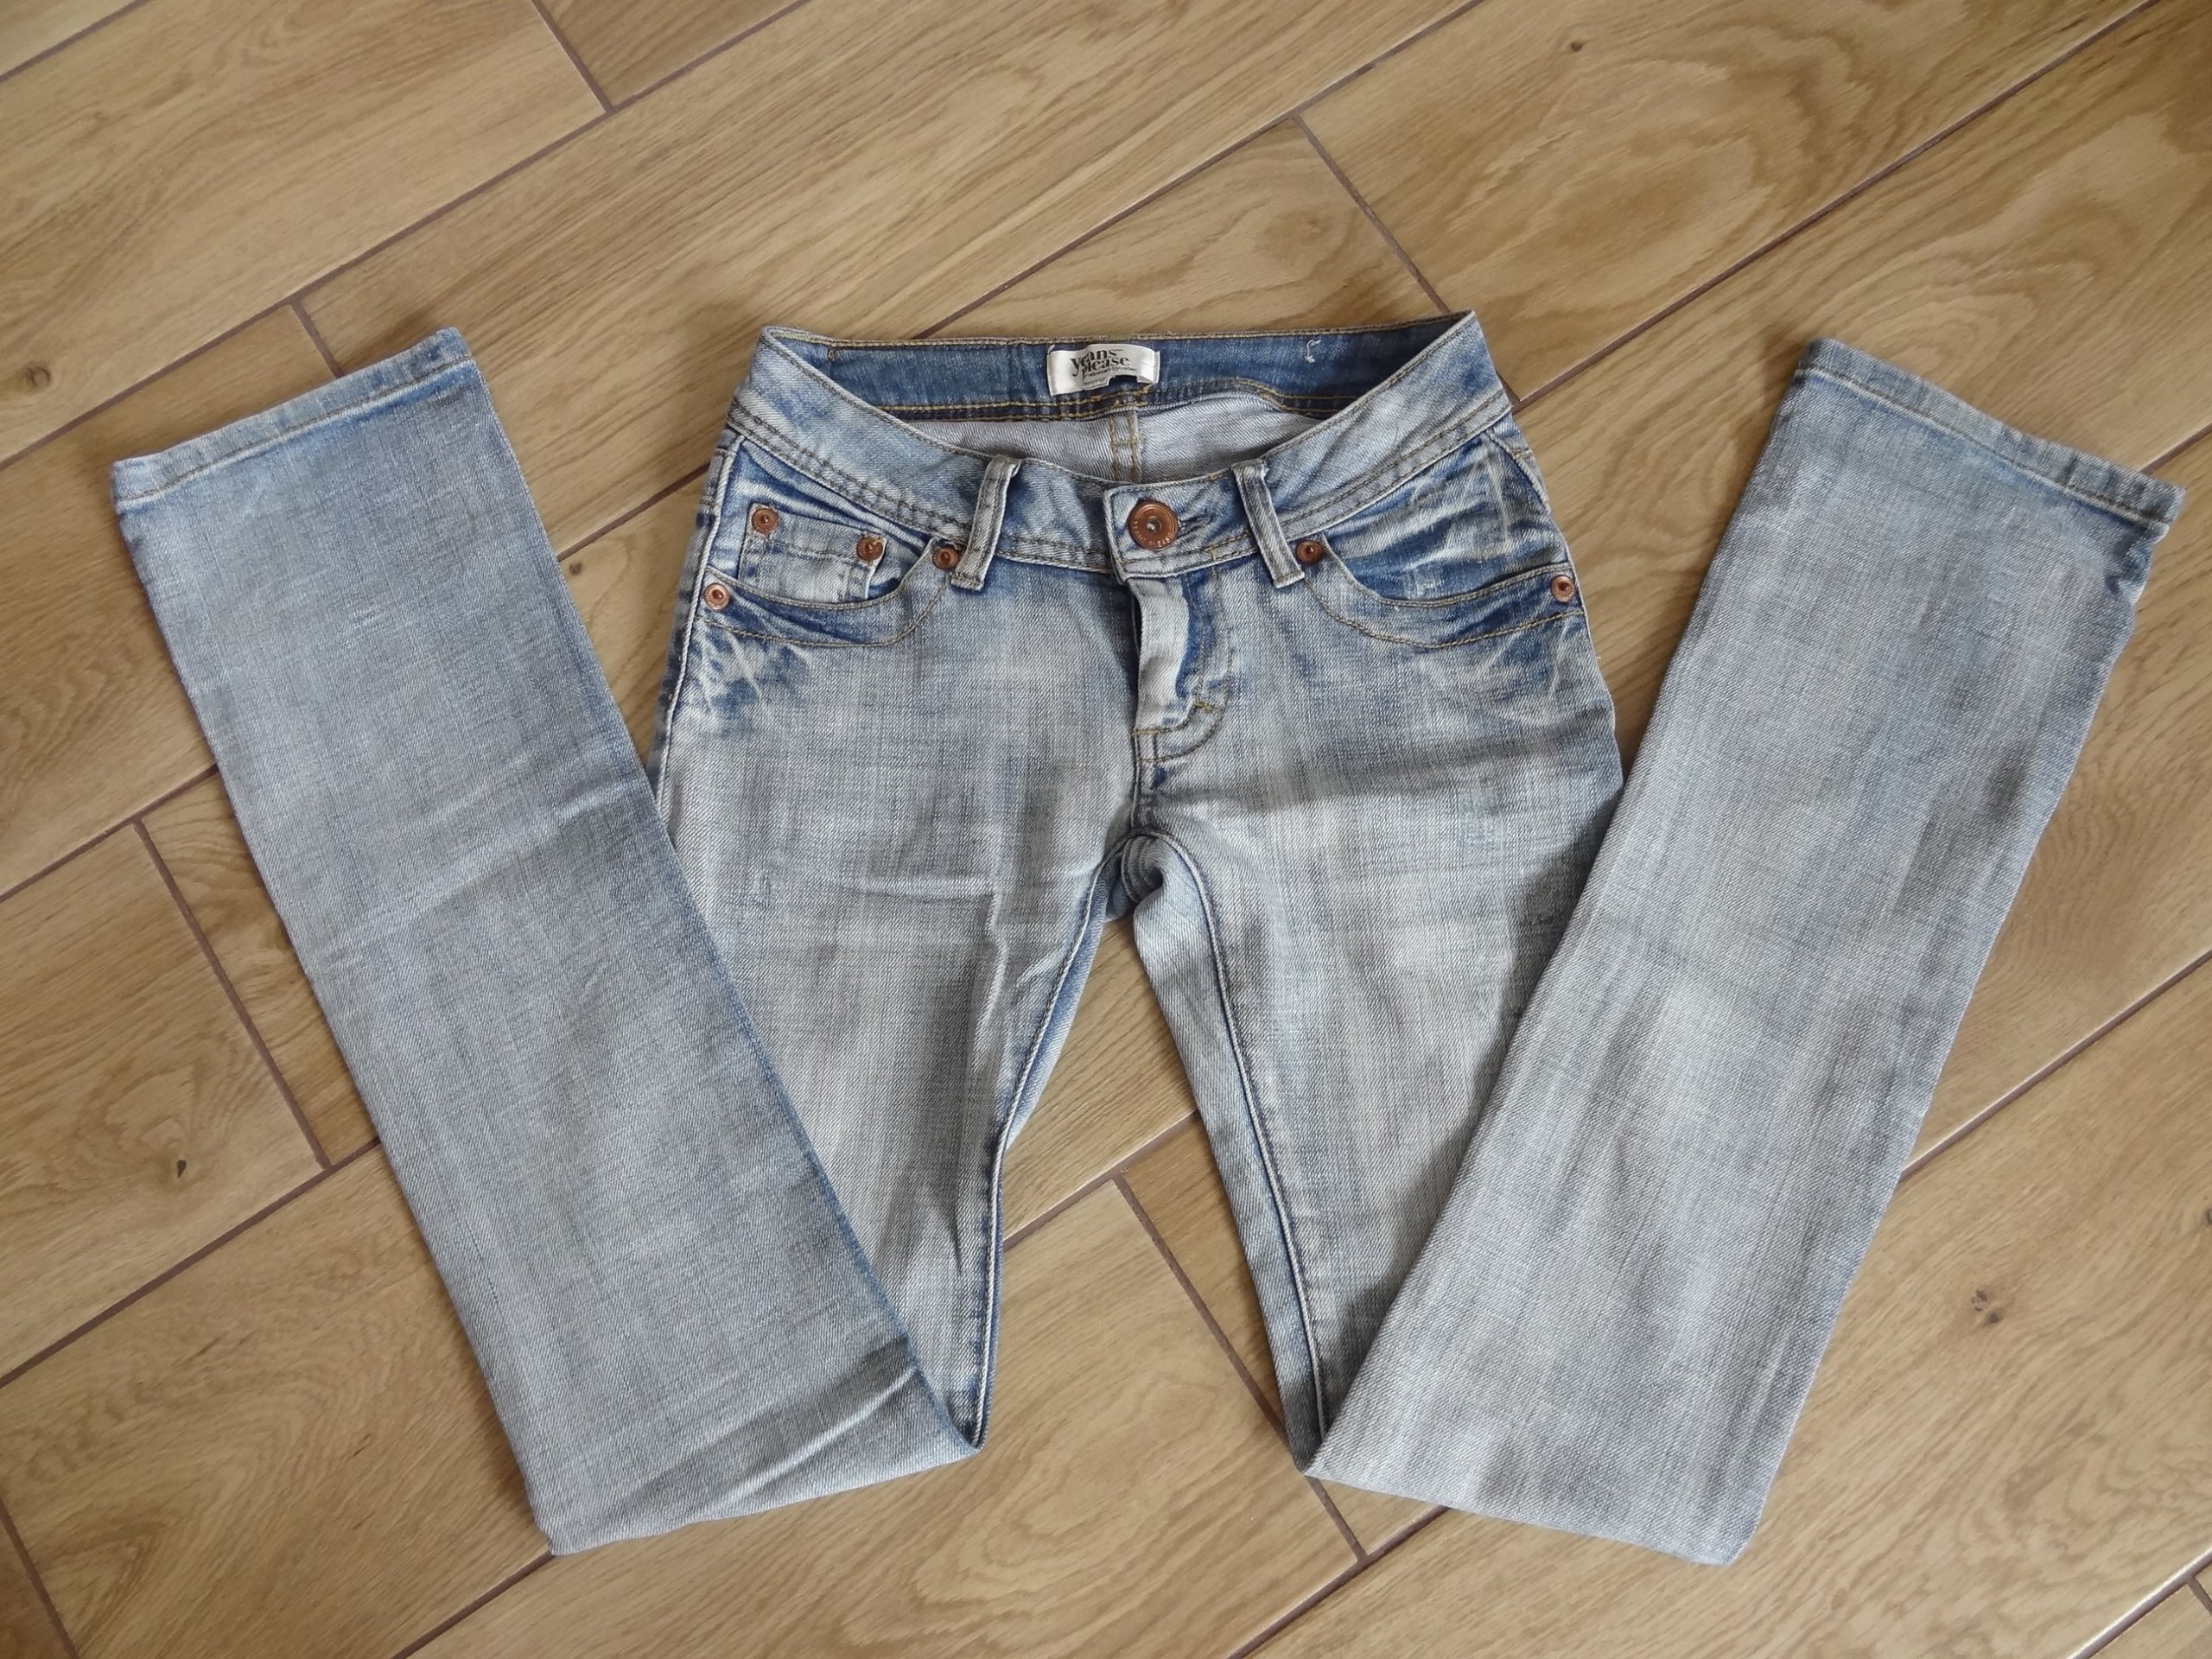 43b0caf71 CUBUS jeansy 34 XS vinted ZARA NEXT H&M MOHITO - 7181354791 ...